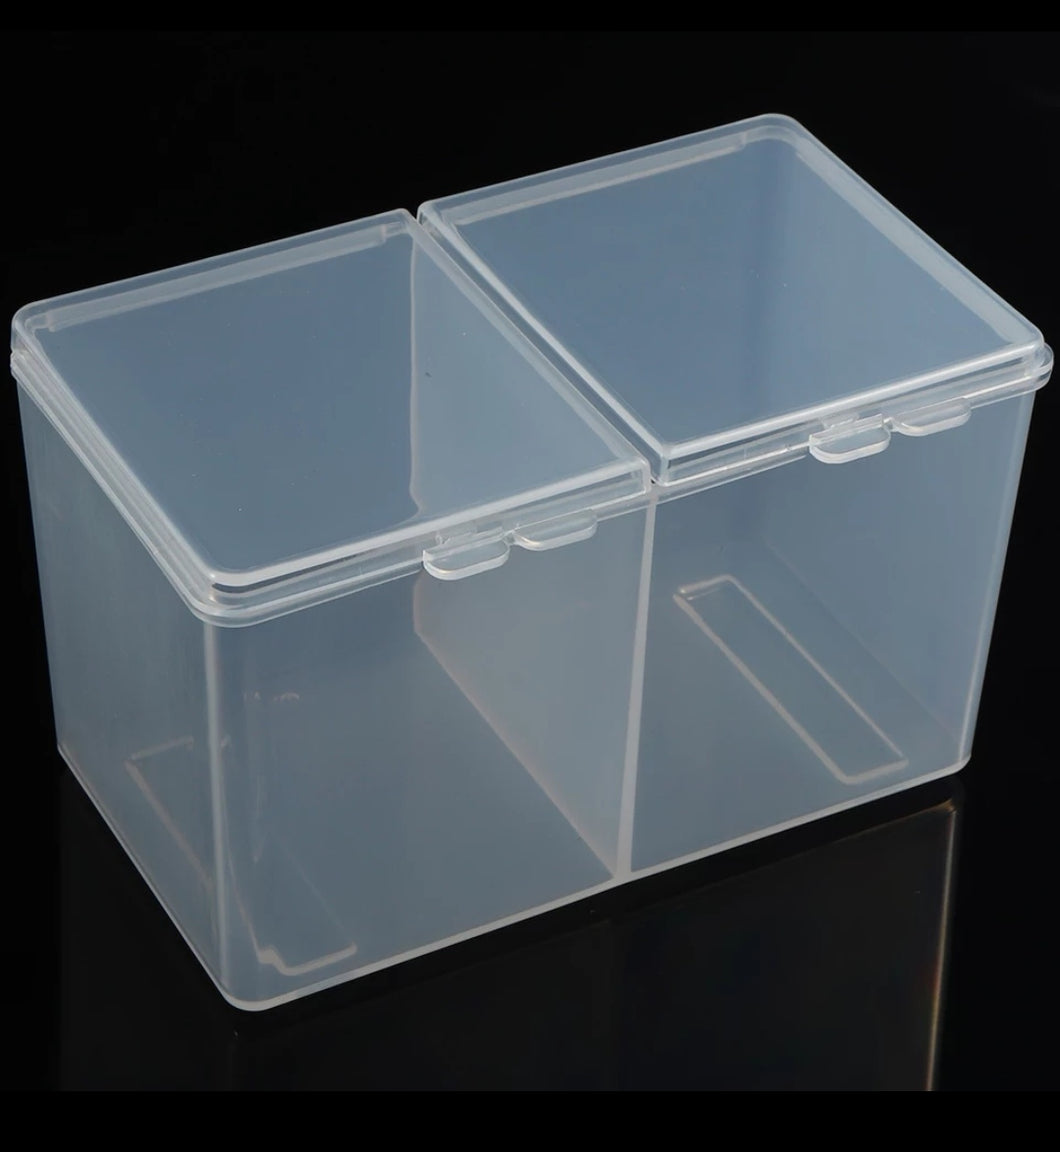 Plastic wipe/storage container CLEAR